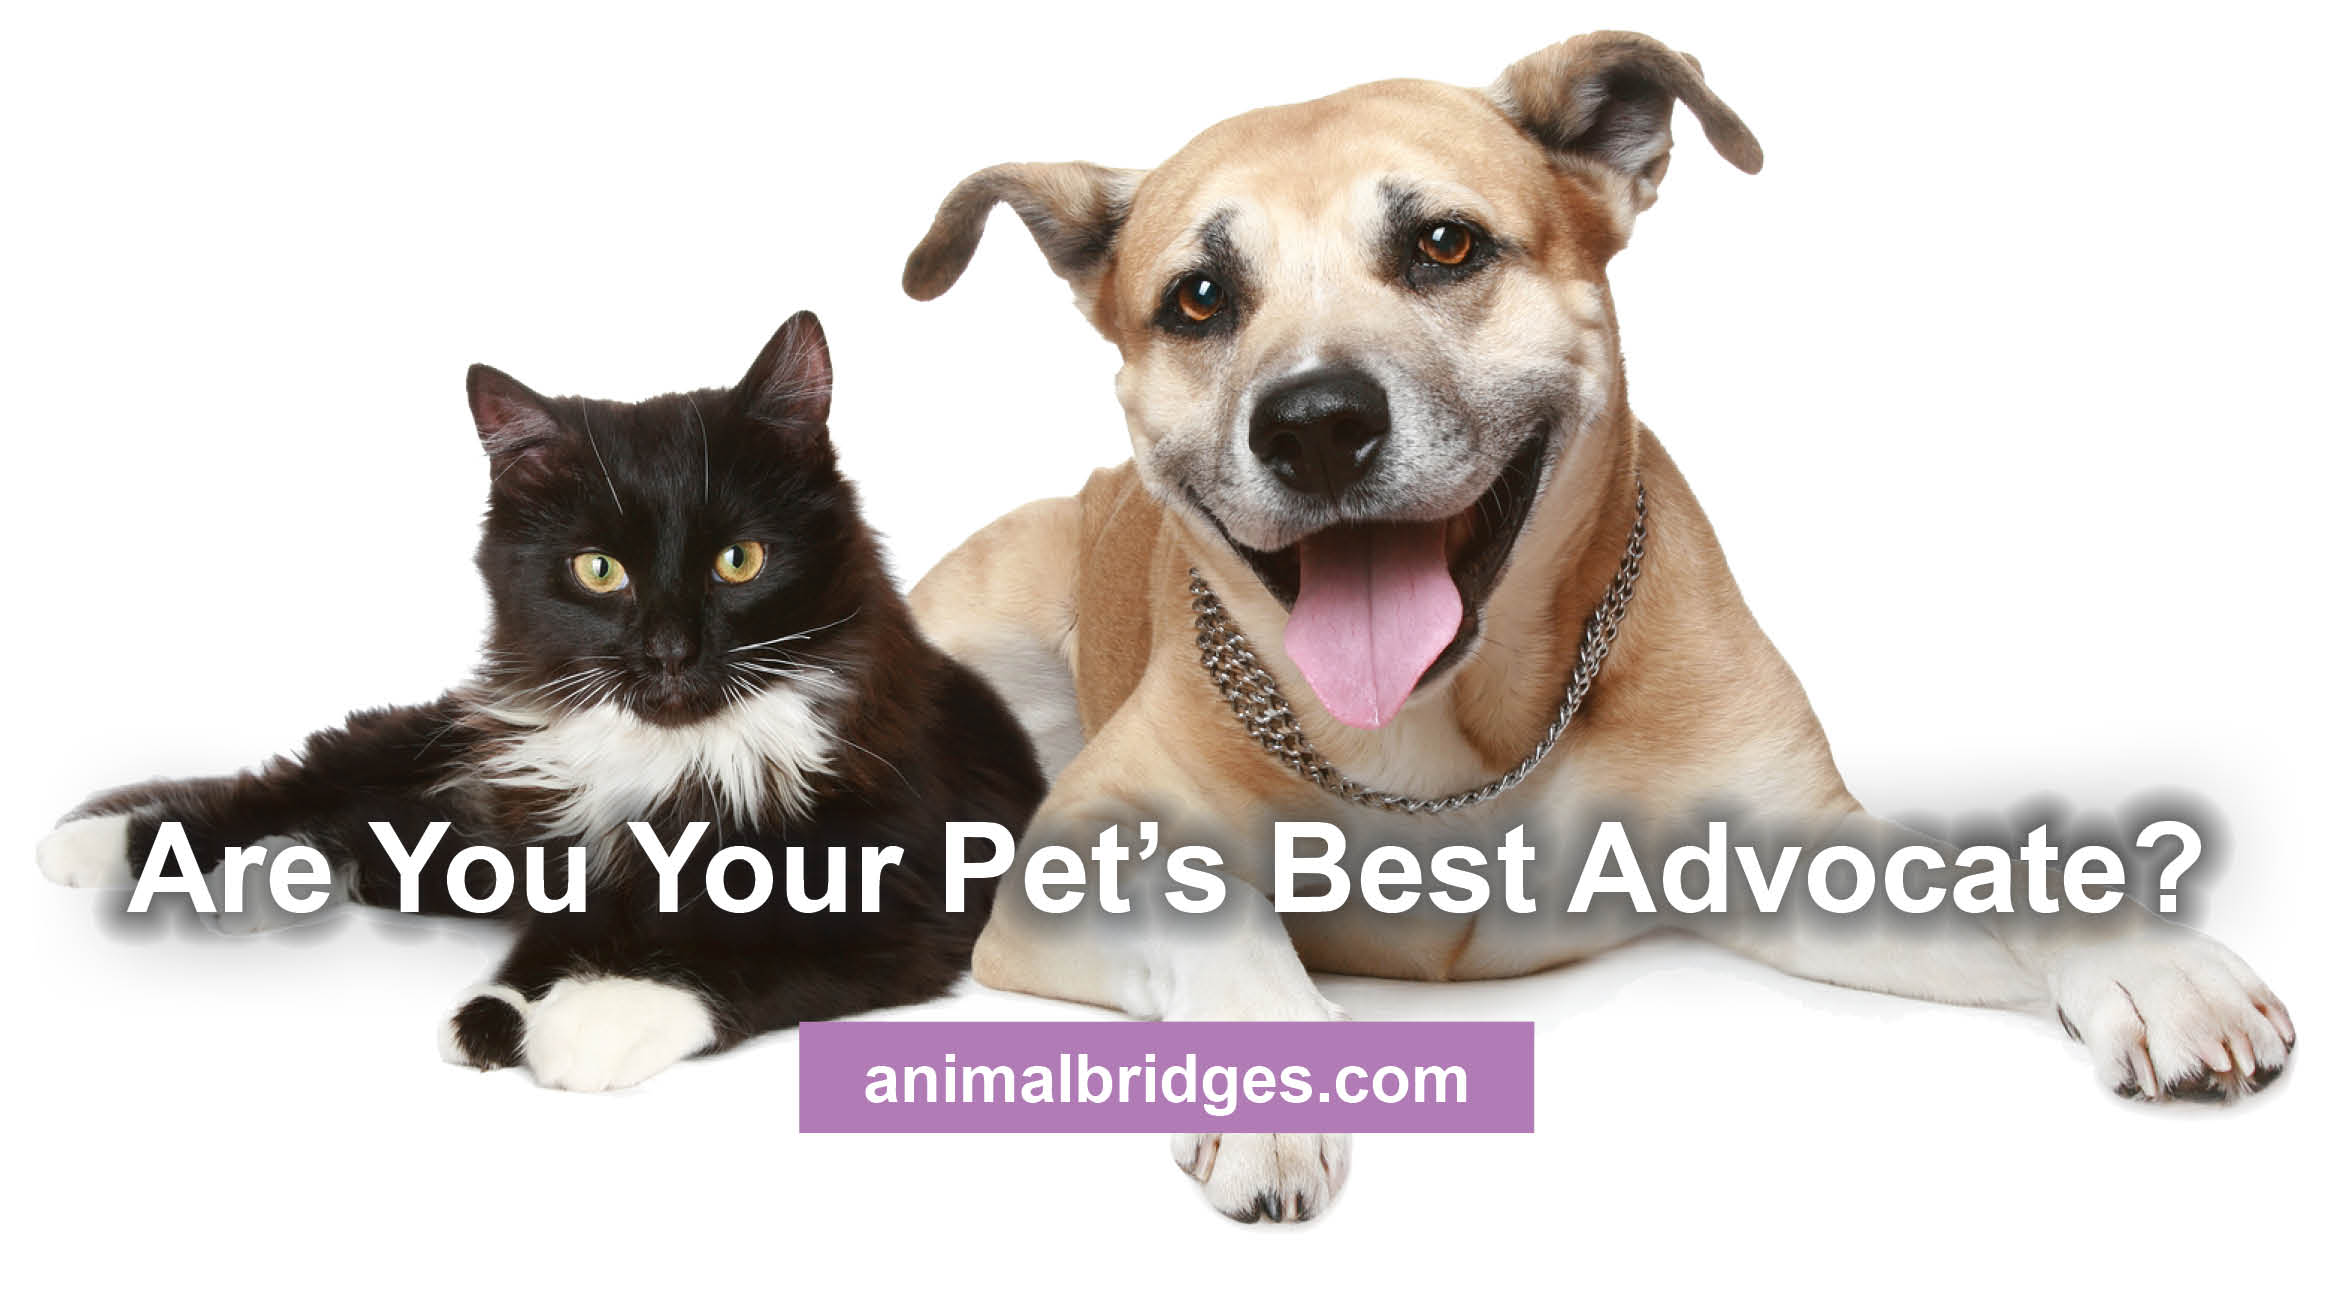 Your Pet's Best Advocate